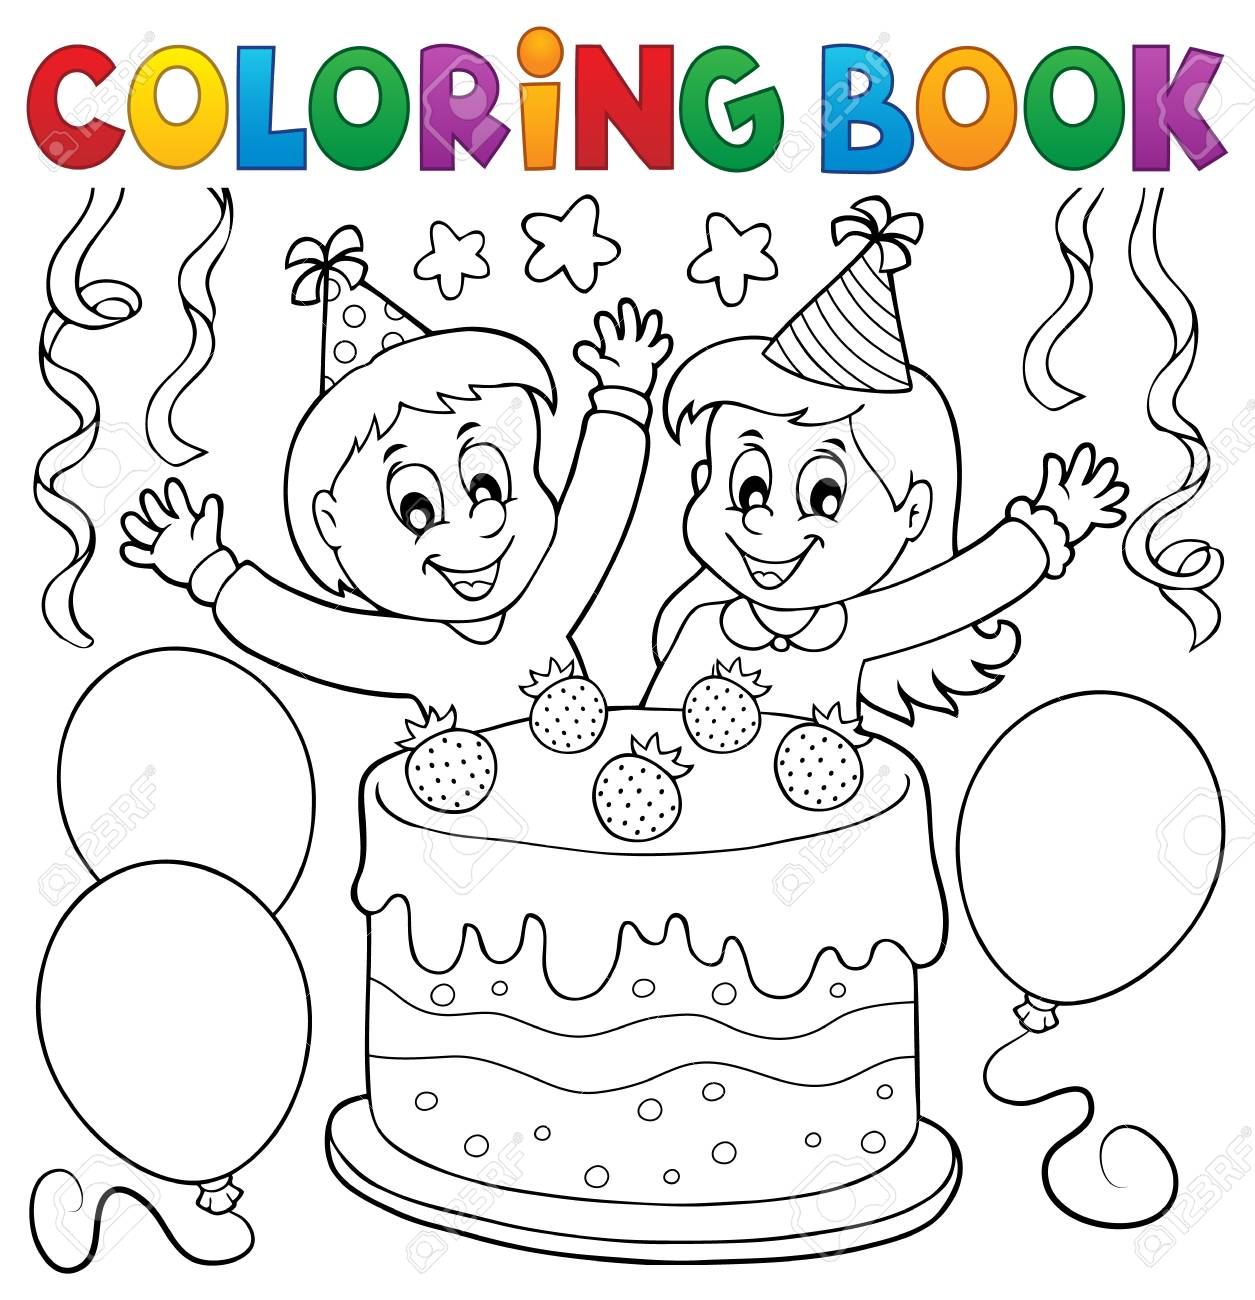 Coloring Book Cake And Kids Celebrating - Eps10 Vector Illustration ...